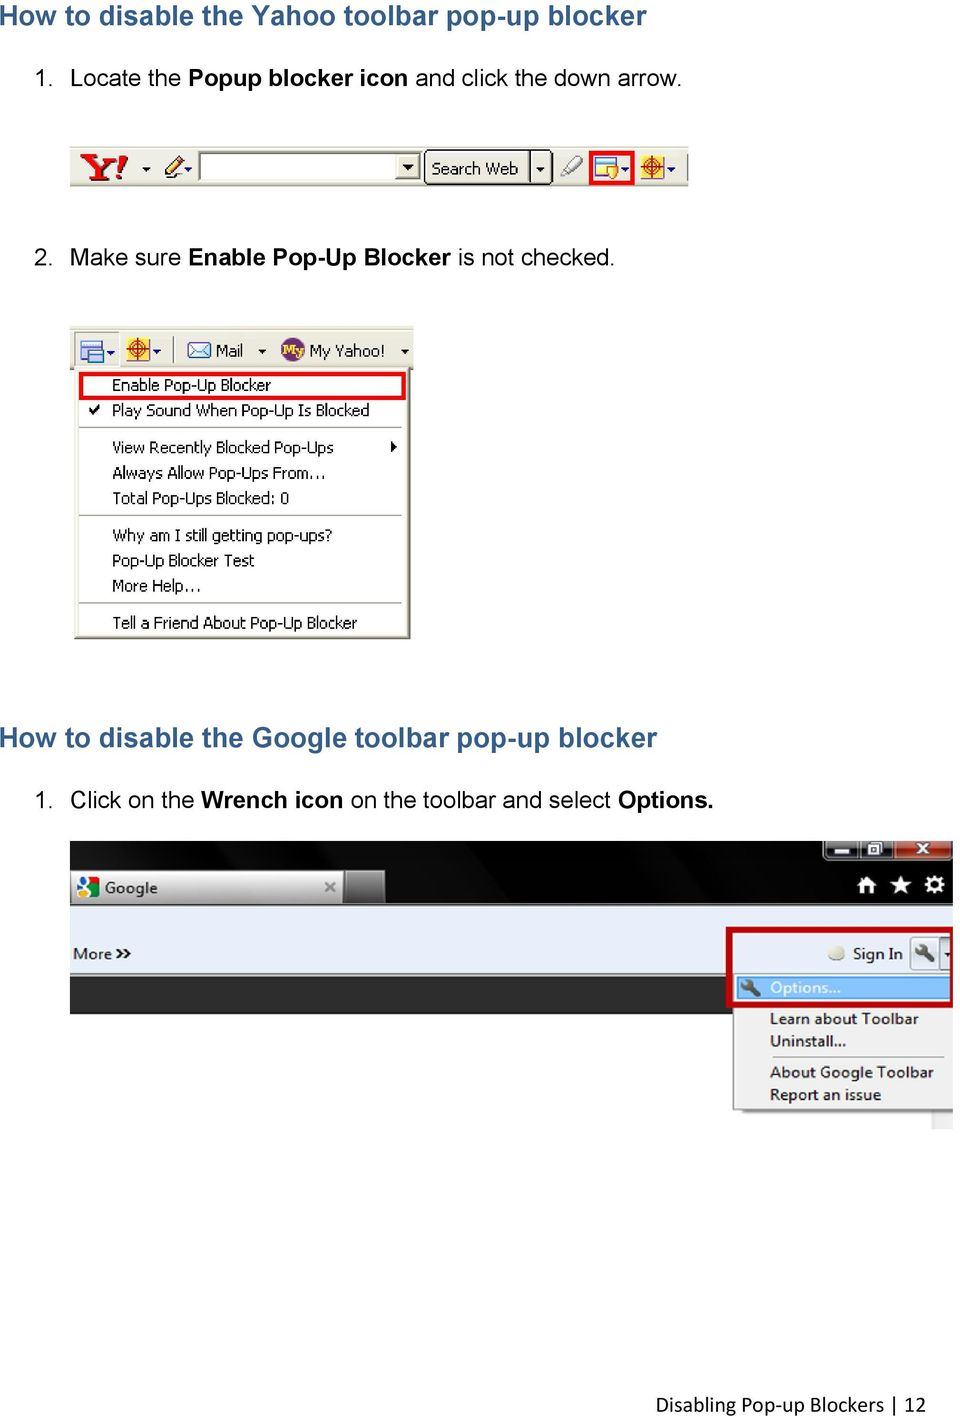 Make sure Enable Pop-Up Blocker is not checked.